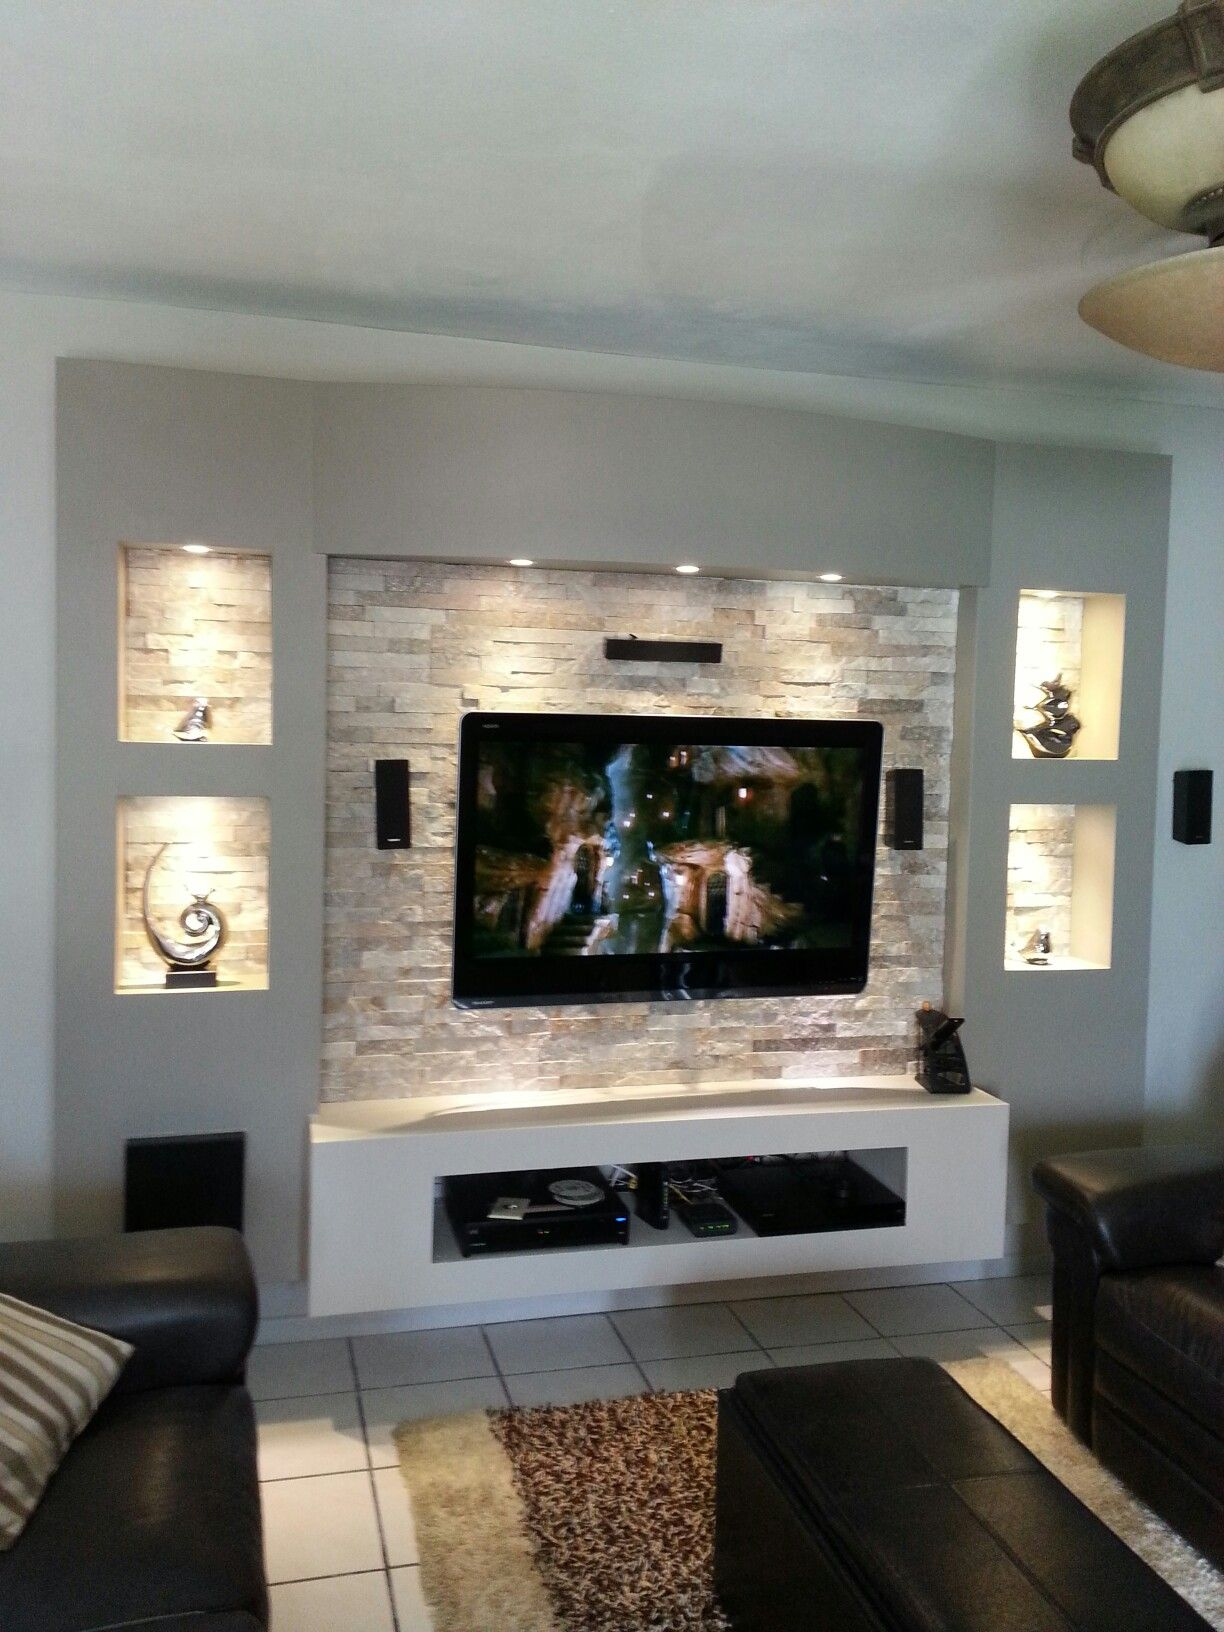 Deco Mur Tv Innovación Tv Unit My Own Projects Tv Wall Decor Living Room